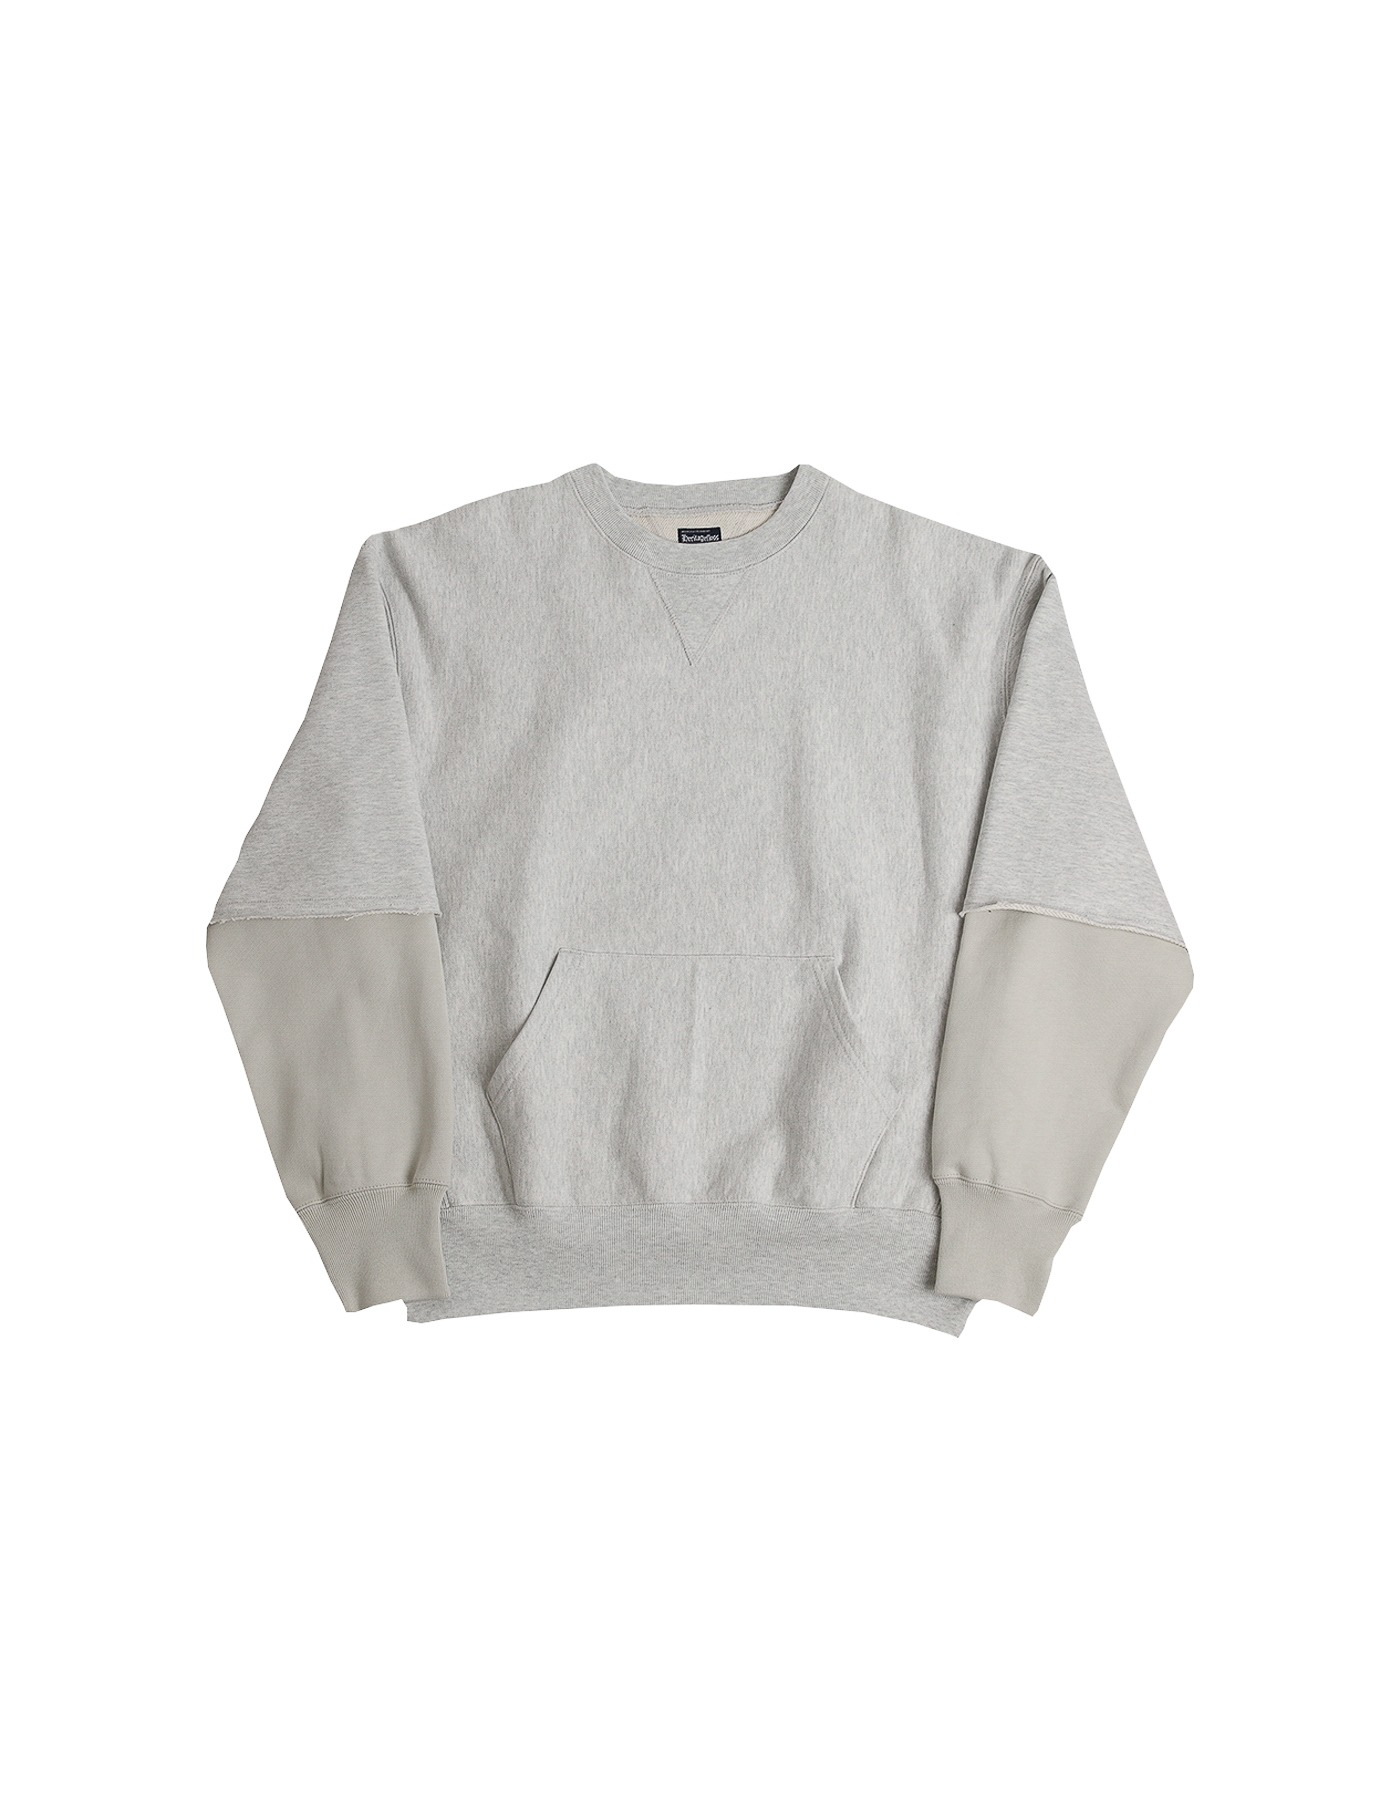 221 REVERSE ROCKY CREWNECK / M.GREY(1%)-LIGHT JADE